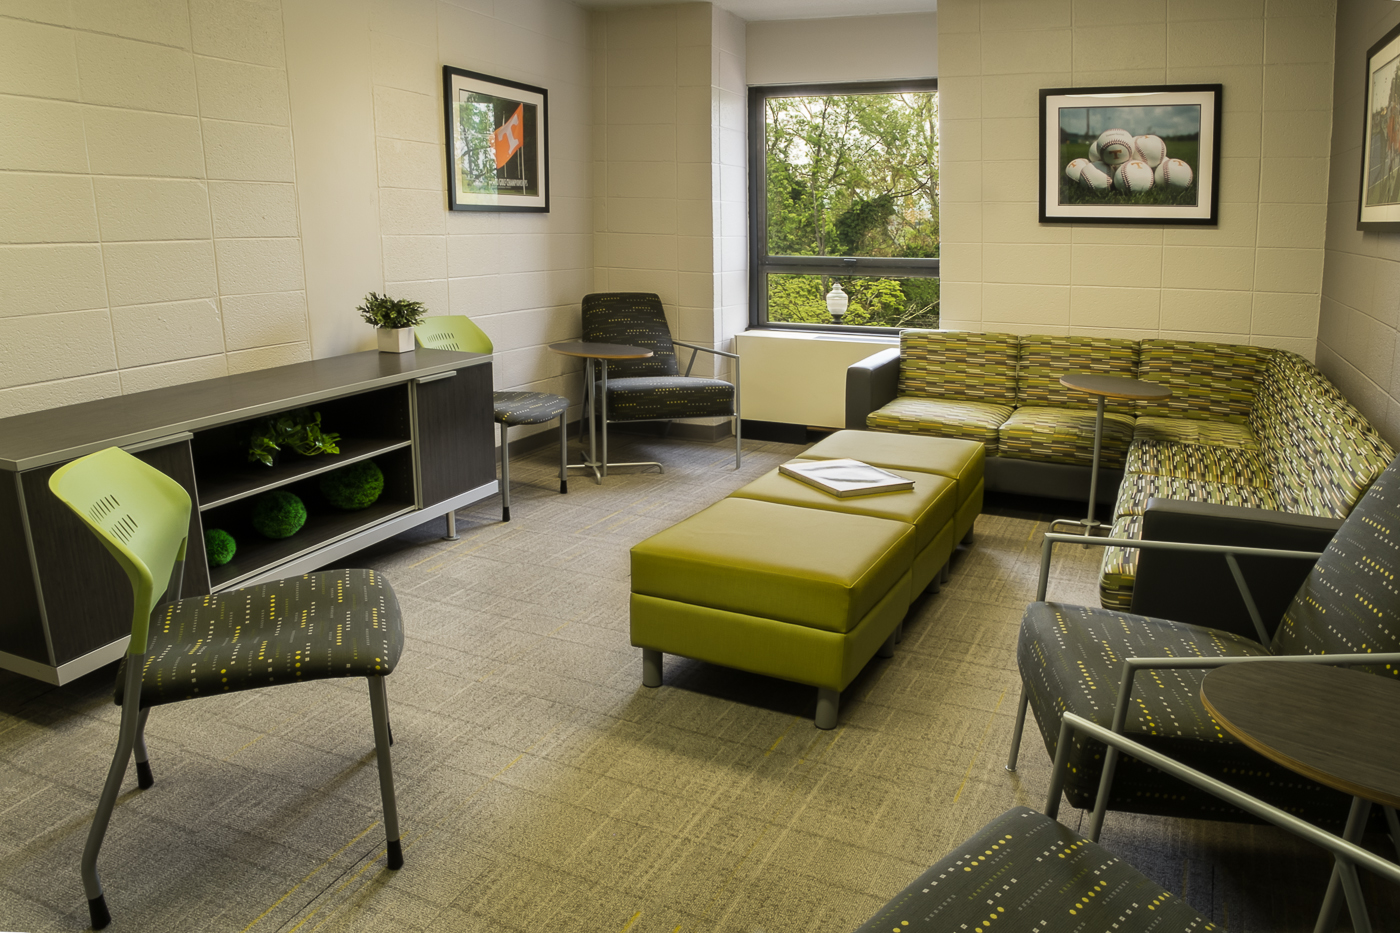 Common room, Reese Hall, The University of Tennessee, Knoxville